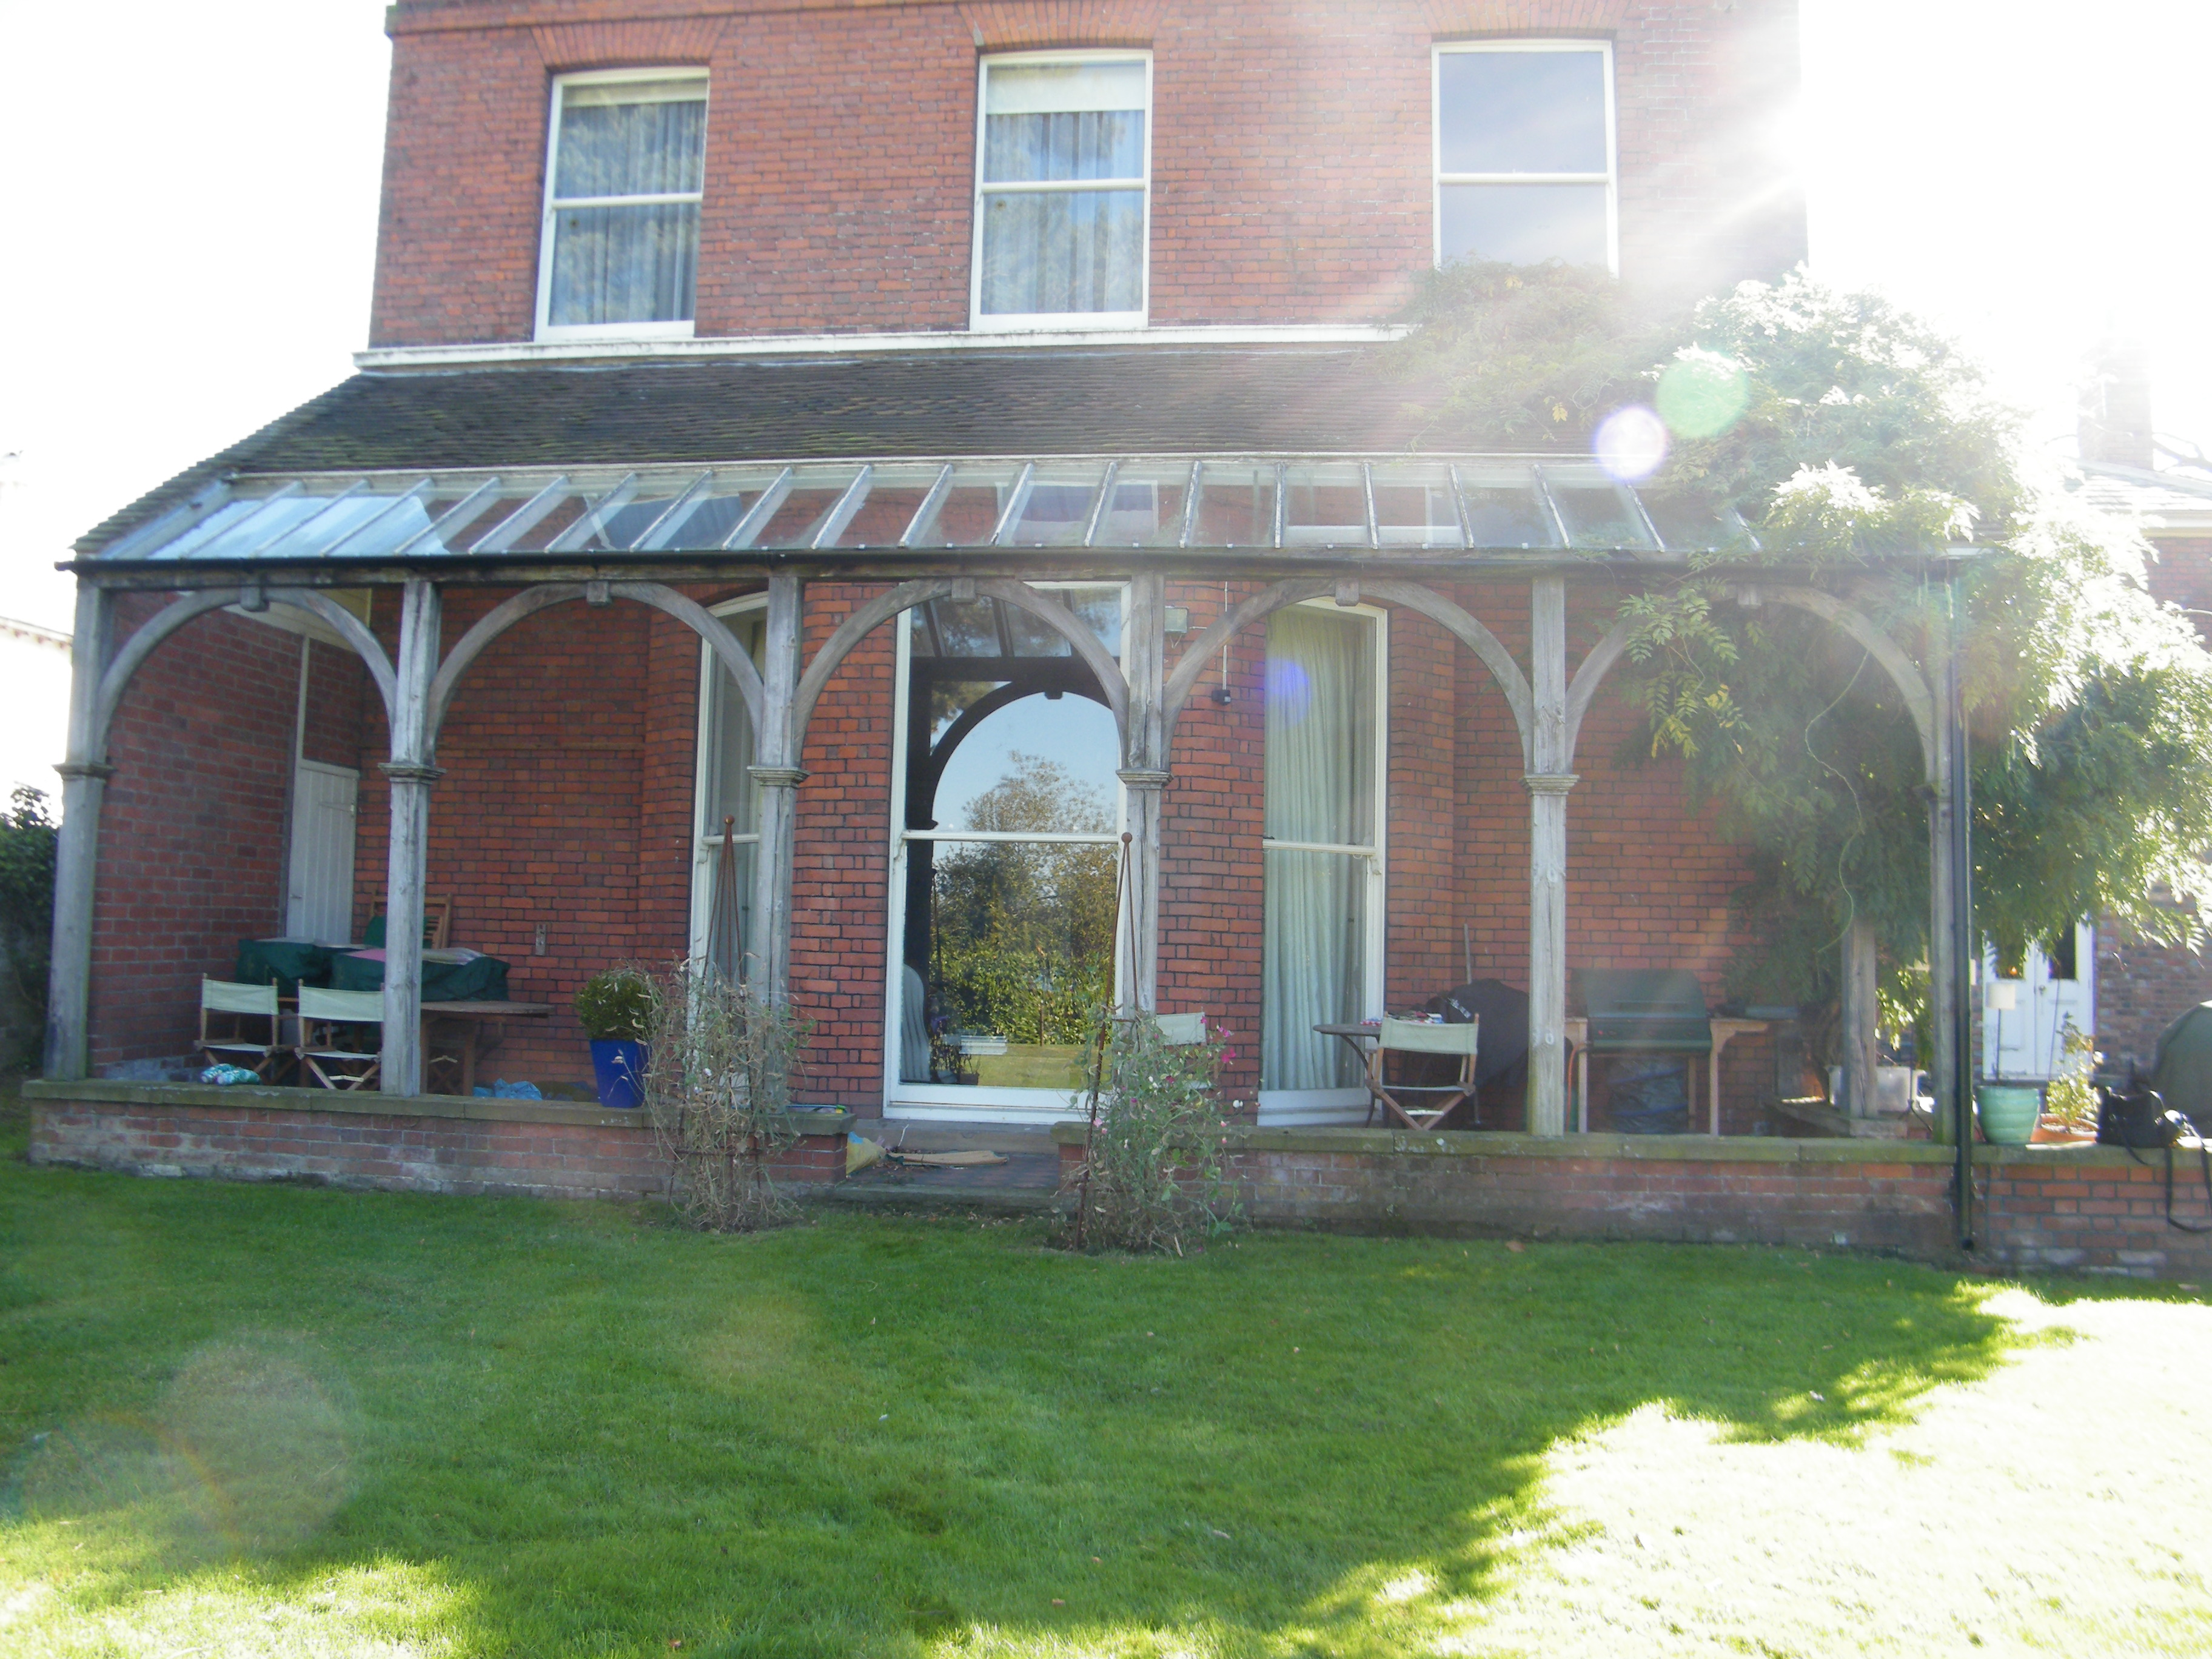 This The Large Back Garden To A Substantial And Attractive Red Brick Grade II Listed Property In Pembury Picturesquely Situated Overlooking Village